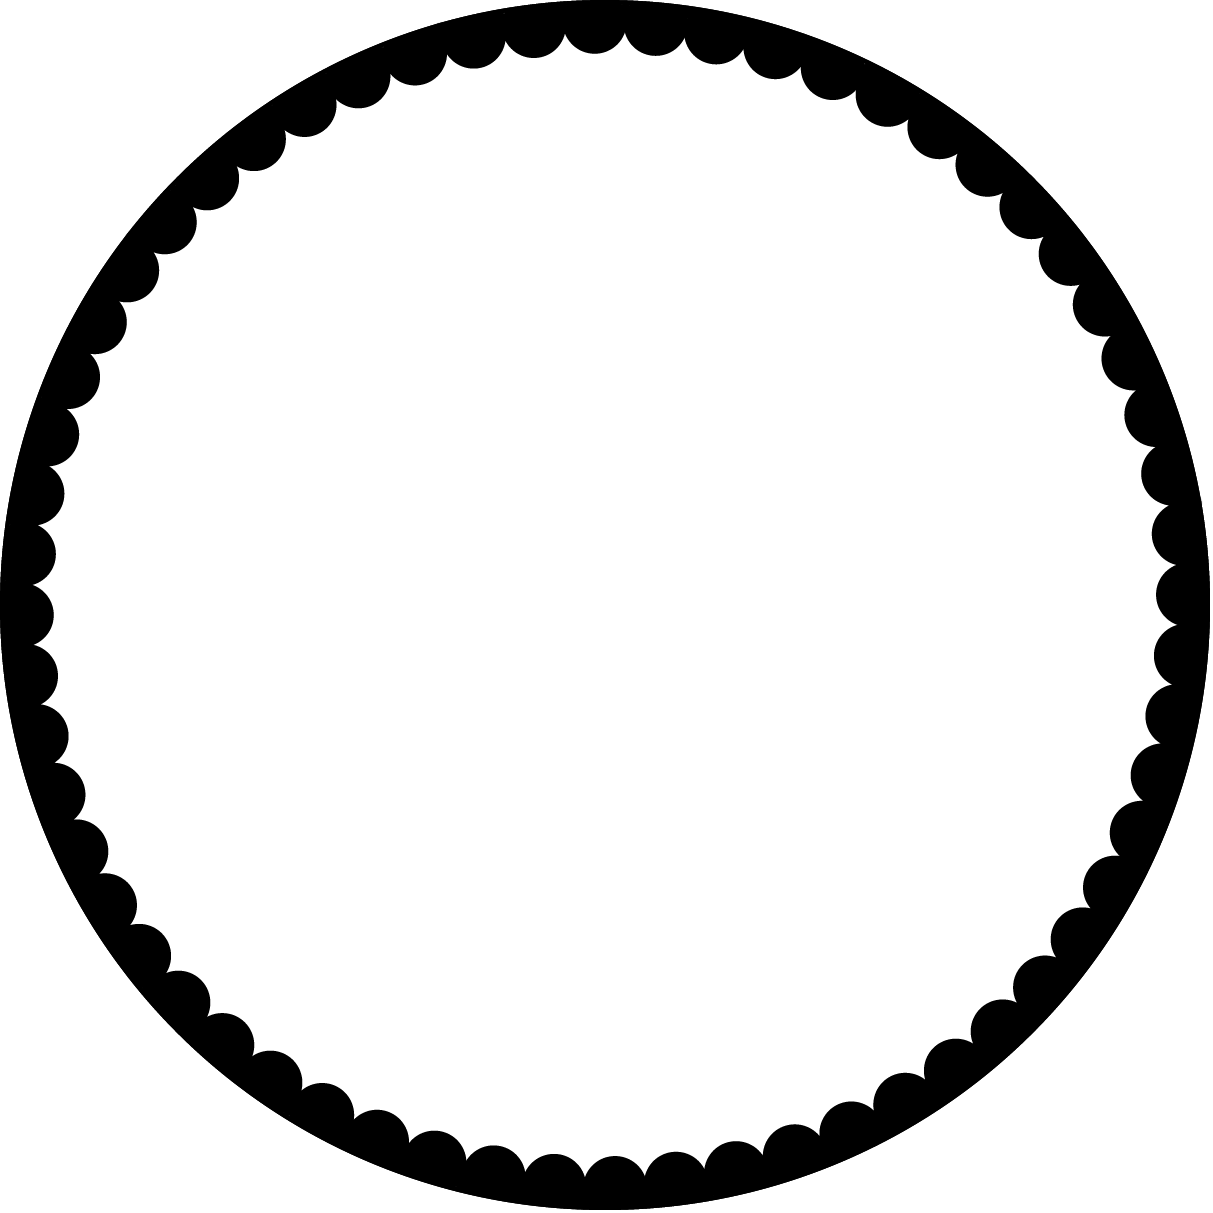 Circle clipart transparent background. Youtube clip art edges